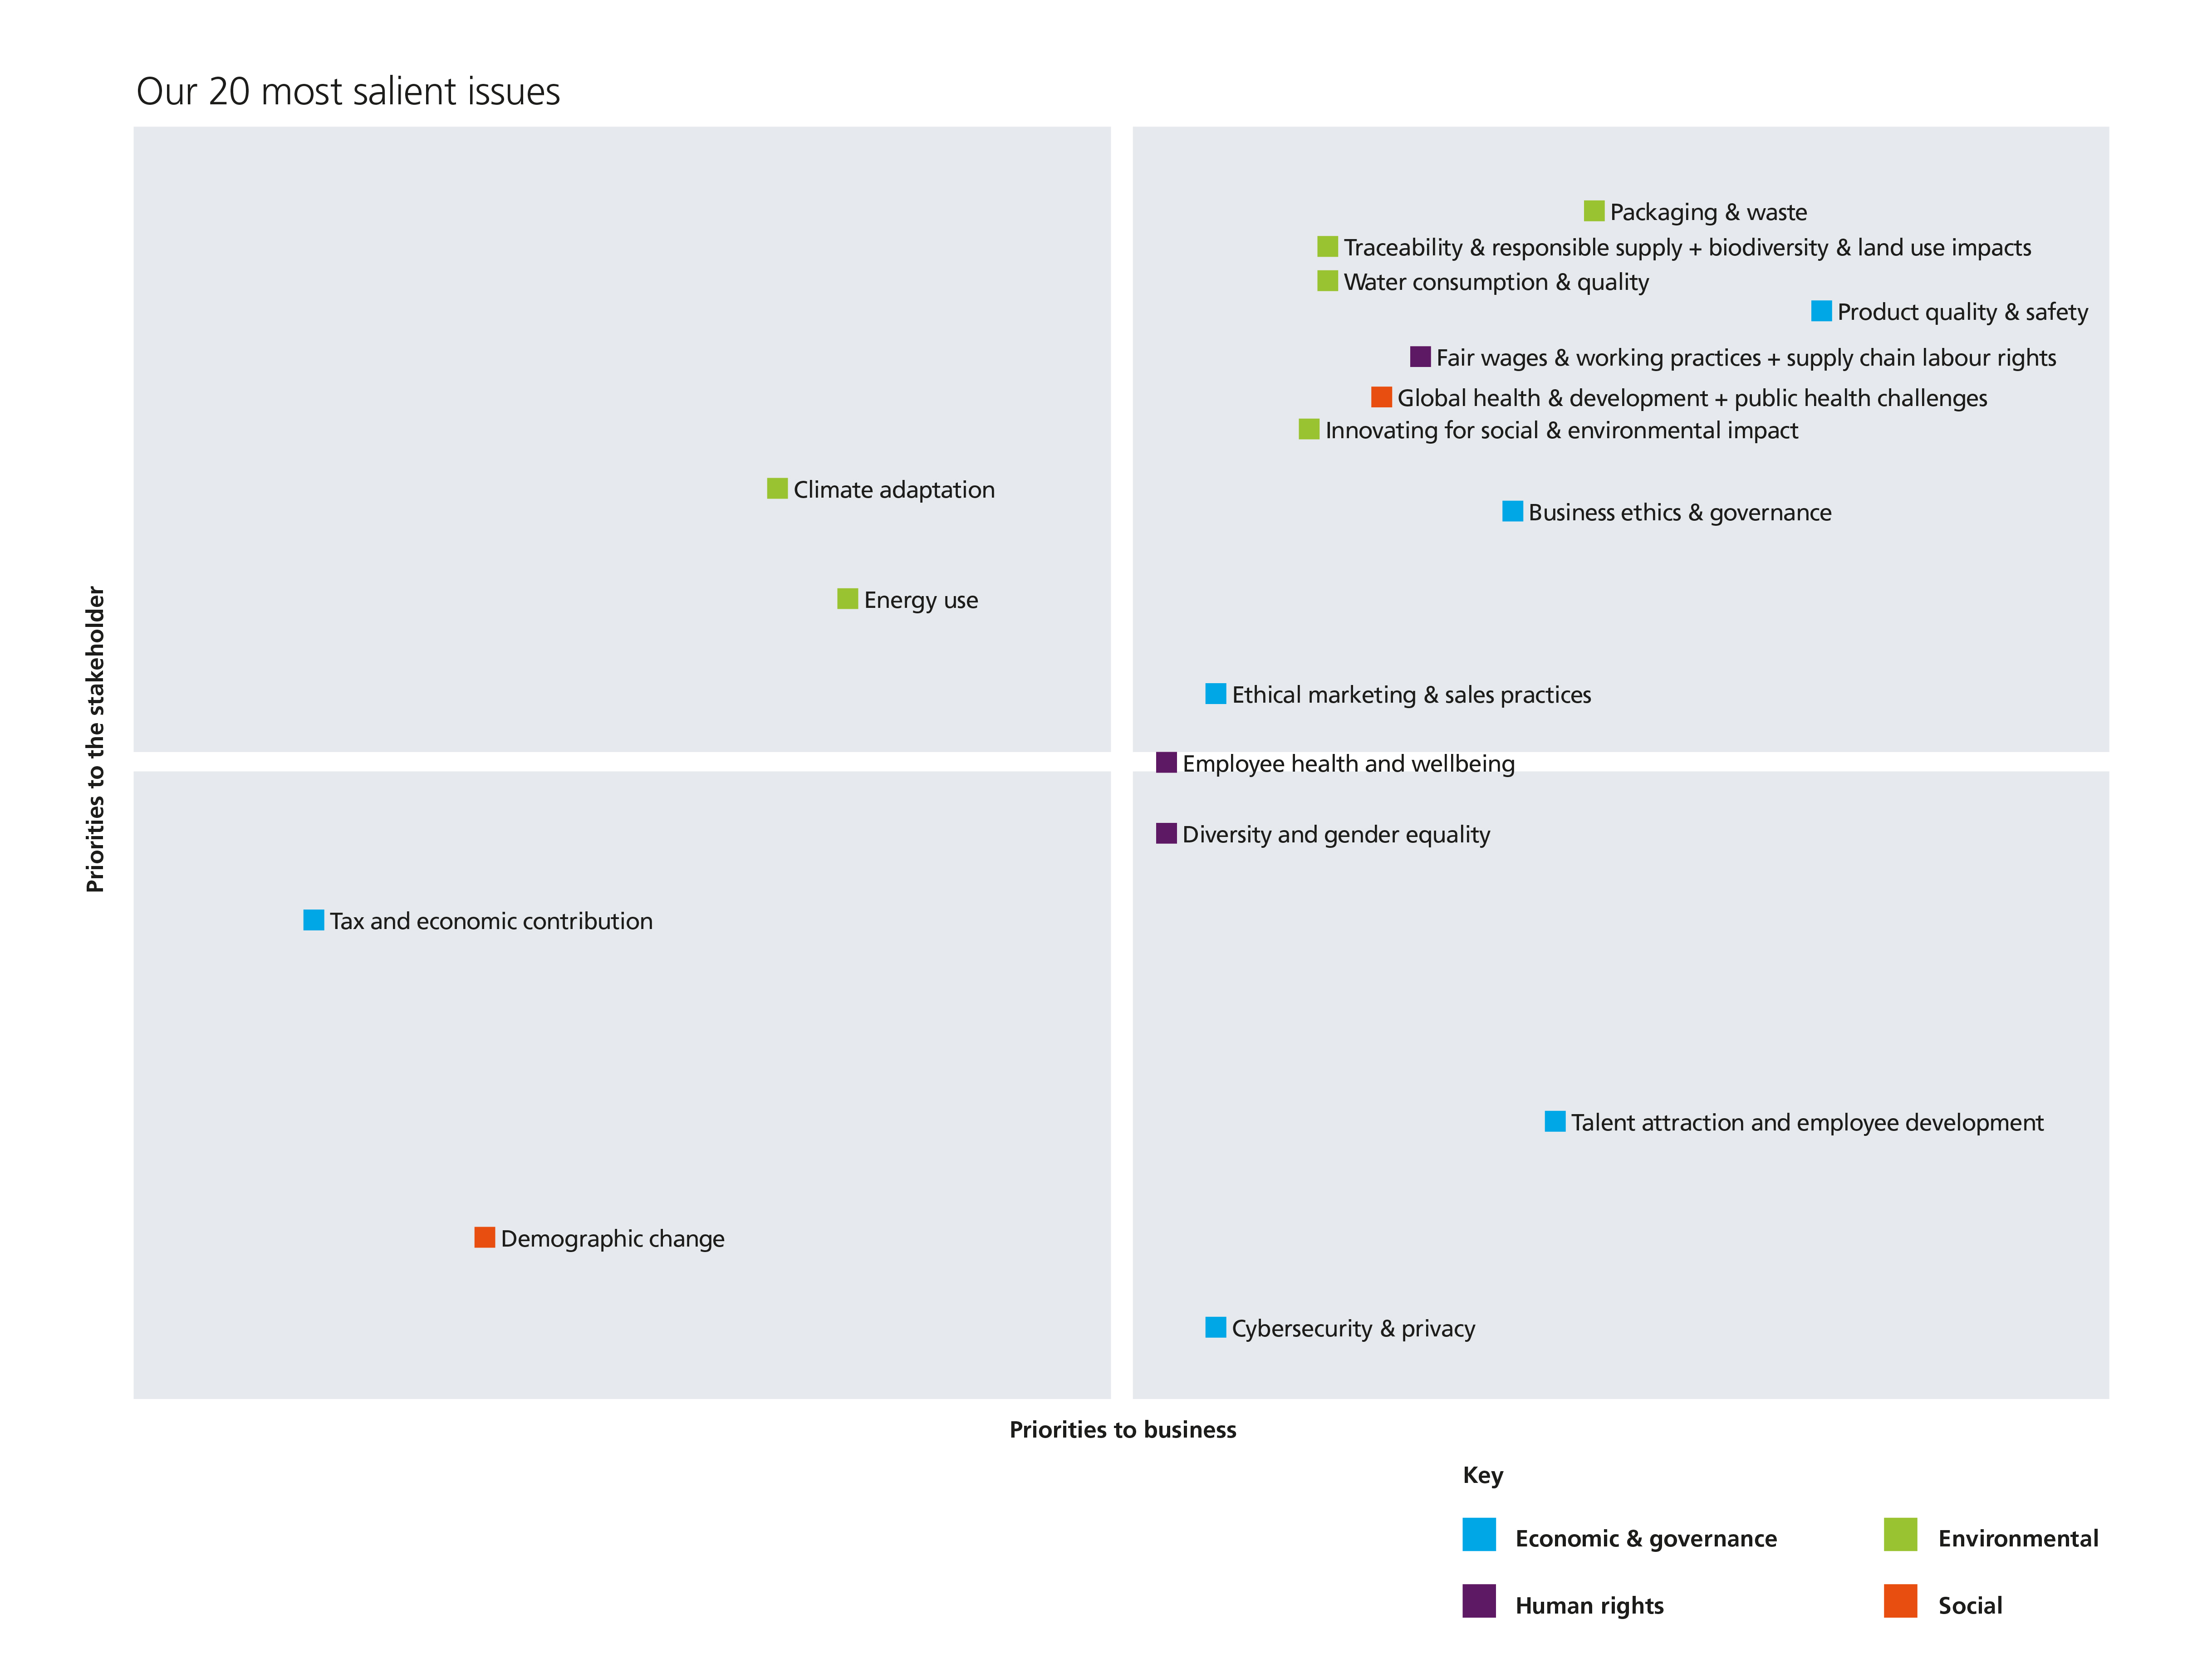 Materiality matrix used to measure 20 most salient issues to stakeholders and business